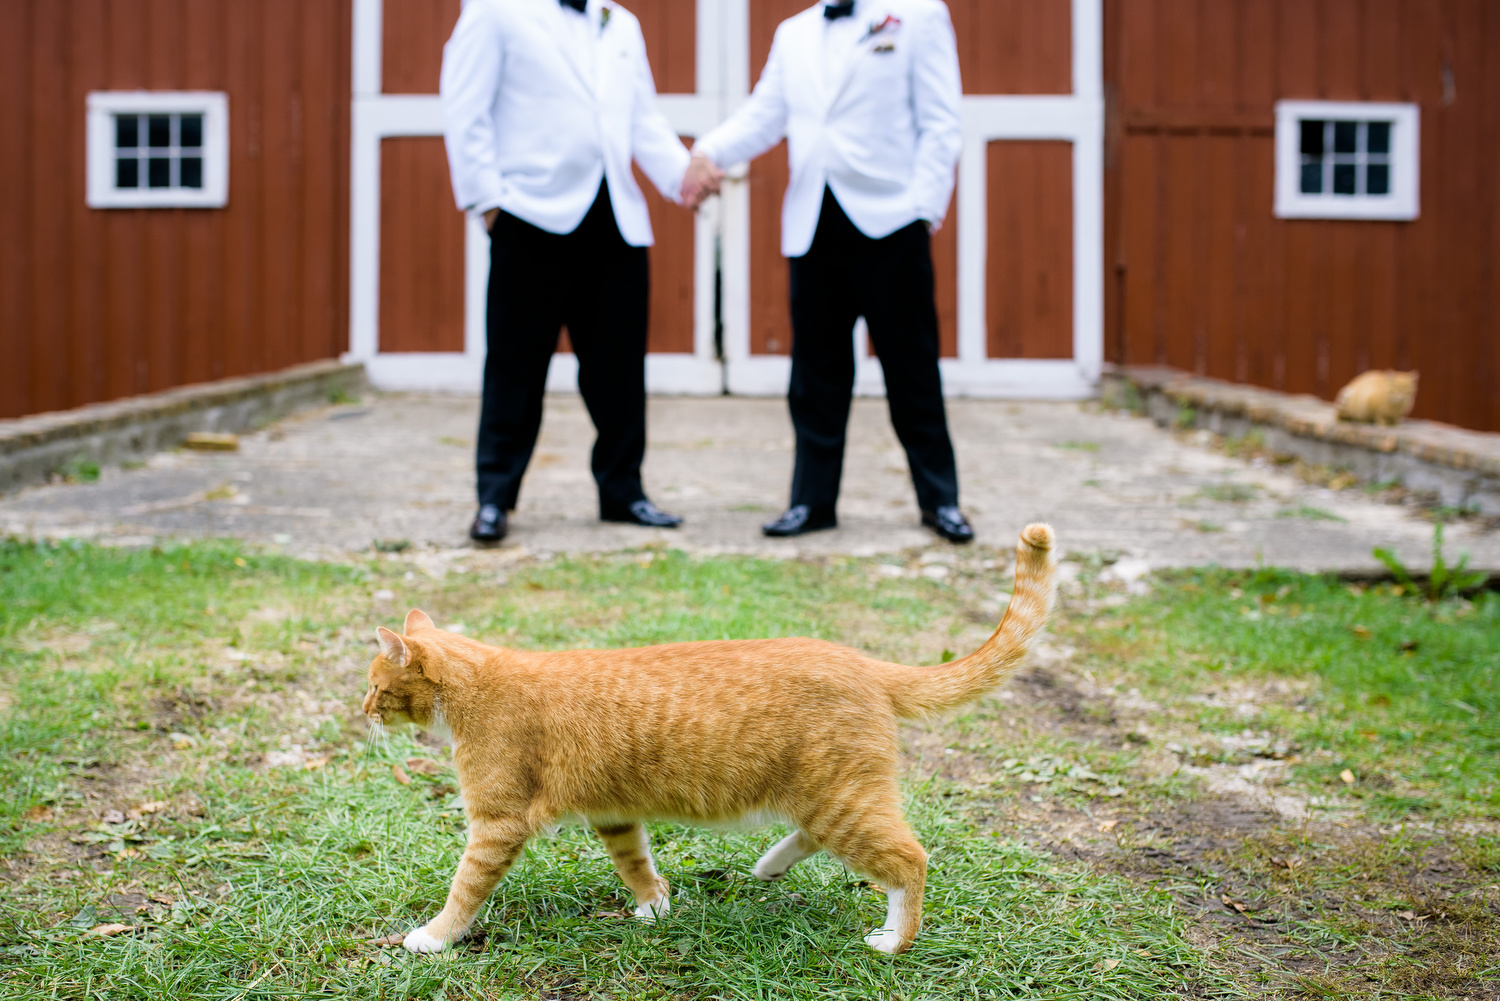 Funny photos involving a cat during a same sex wedding at Heritage Prairie Farm.